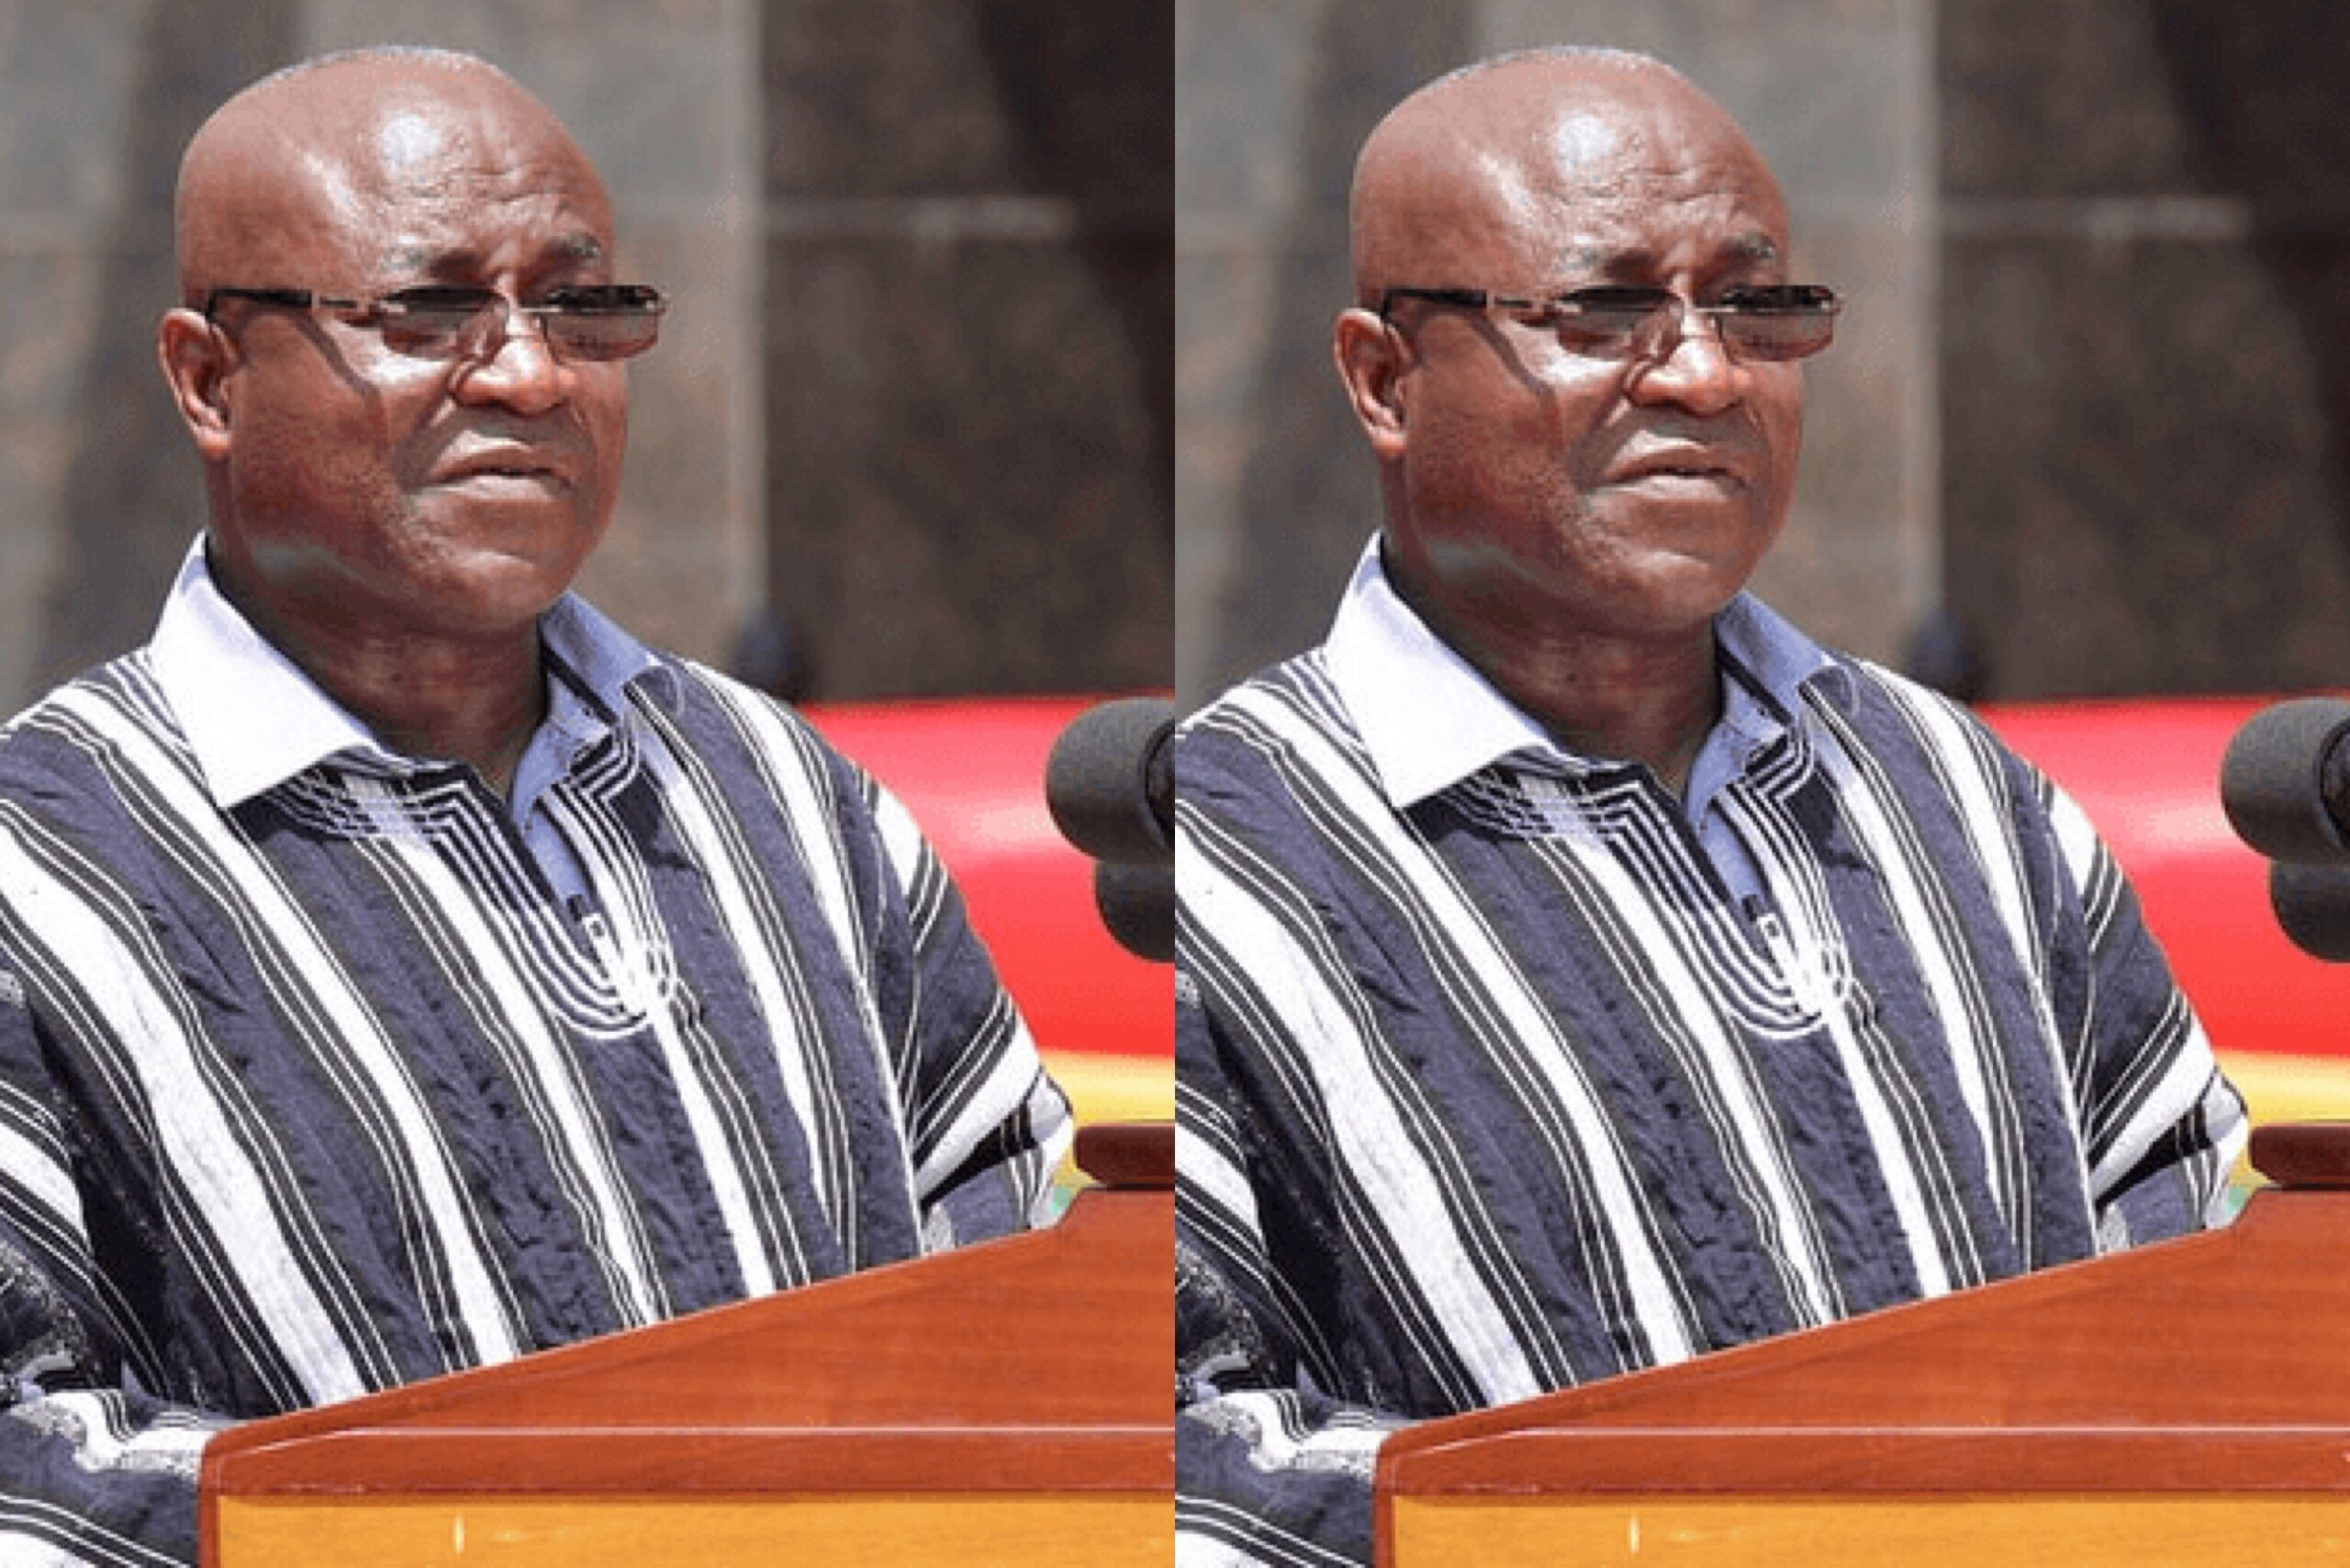 NPP's Kyei-Mensah Suggests That it is Wrong for NDC MPs to Demand Investigation into the K!llings During 2020 Elections